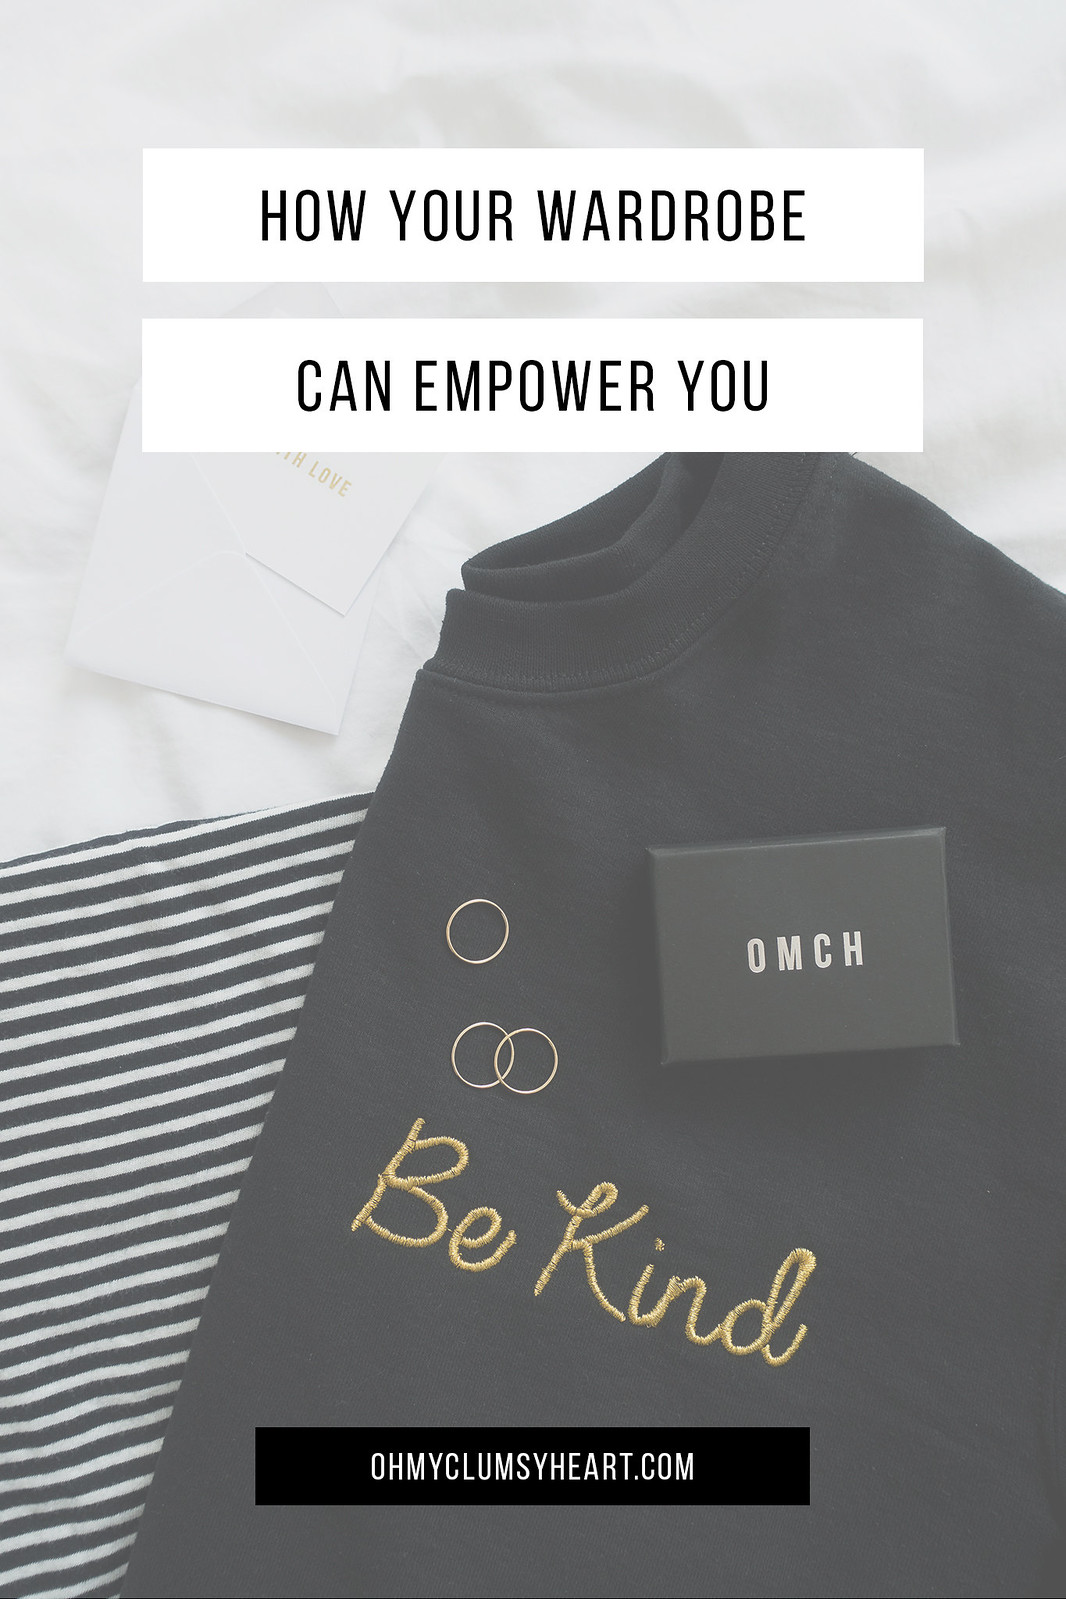 Self-Care and Confidence: How Your Wardrobe Can Empower You